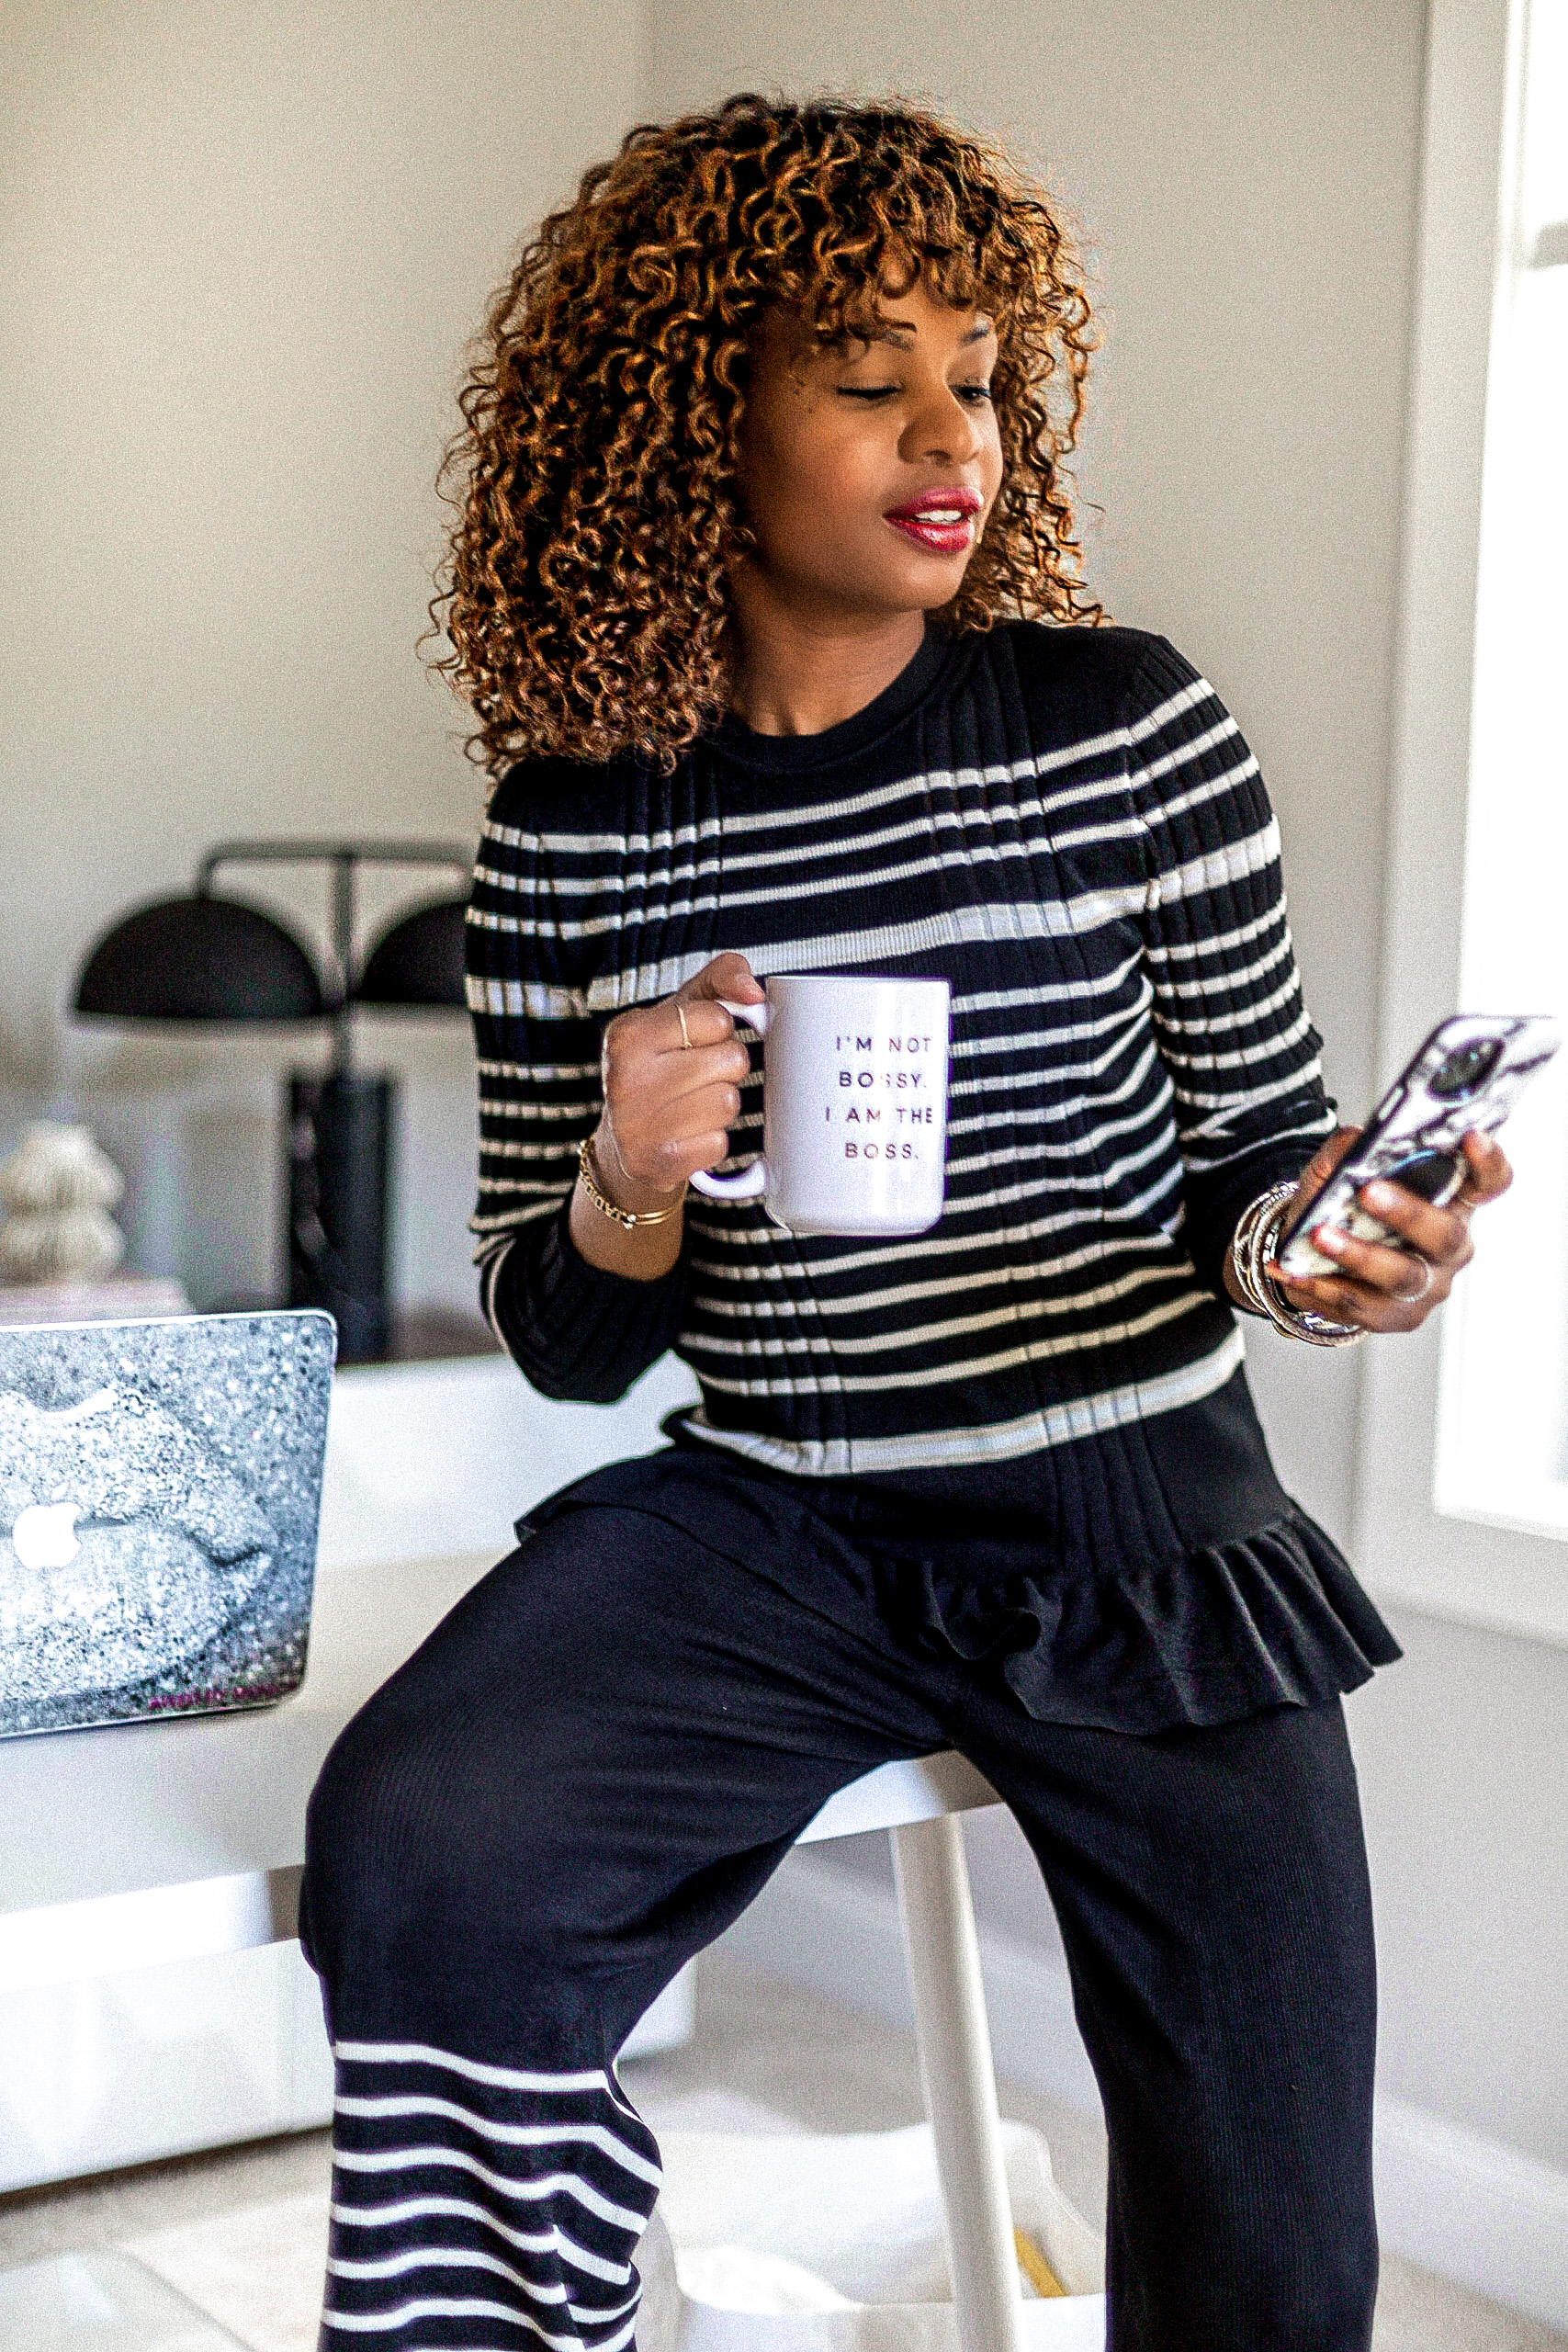 atlanta blogger shows you what to wear while working from home, lounge wear, lounge wear haul, what to wear while working from home, wfh, social distancing, lounge wear outfits, lounge wear try-on, track suit, lounge suit, black and white outfit